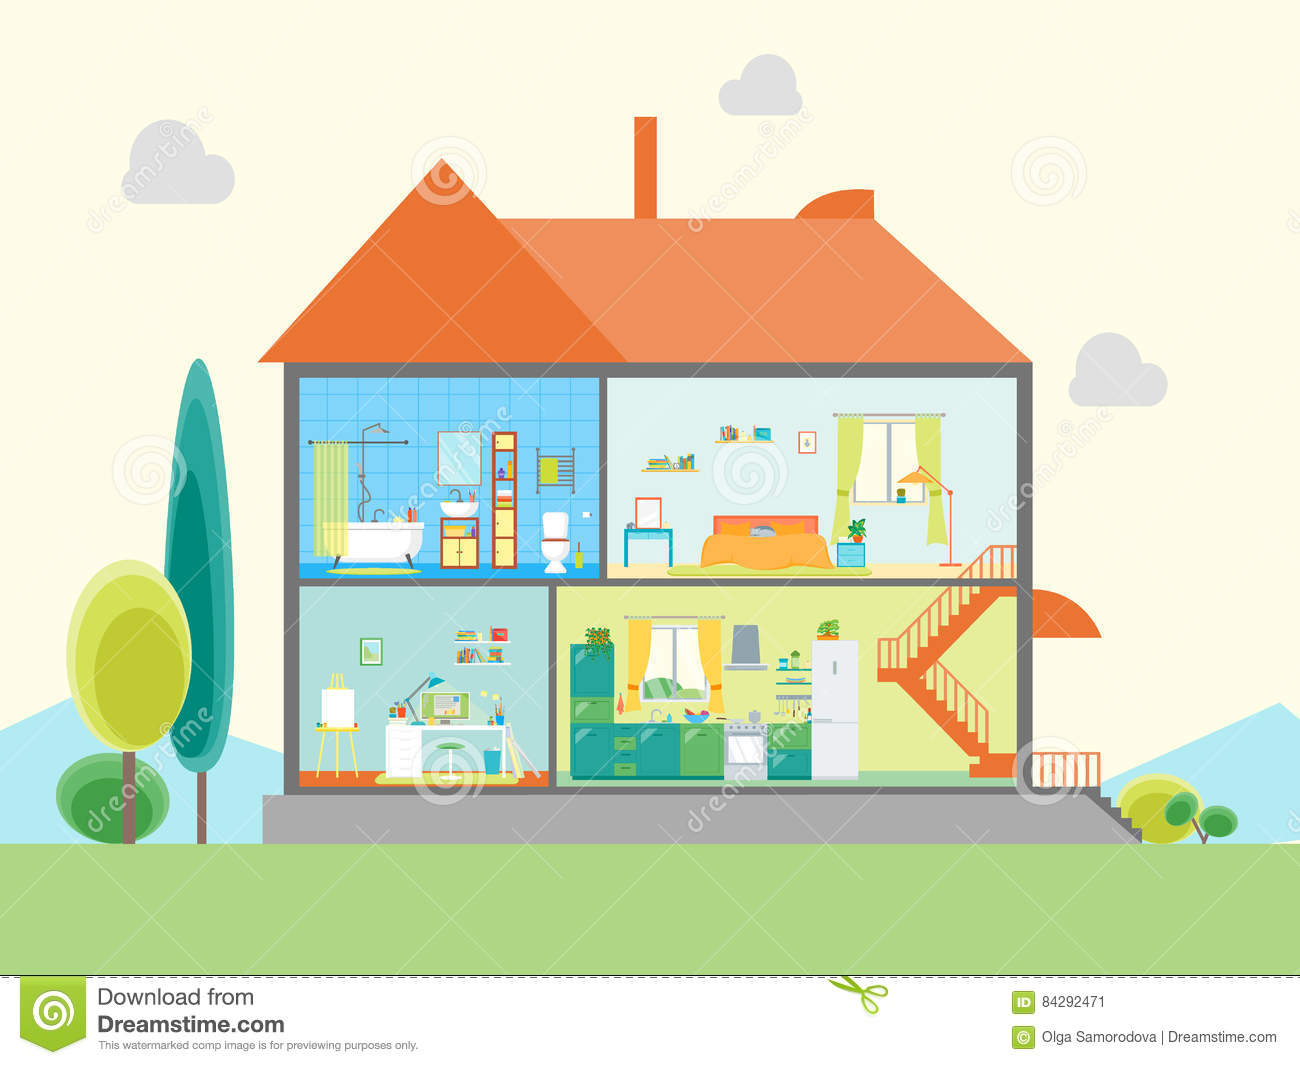 Indoors Garden Cartoon House In A Cut Cartoon Vector Cartoondealer Com